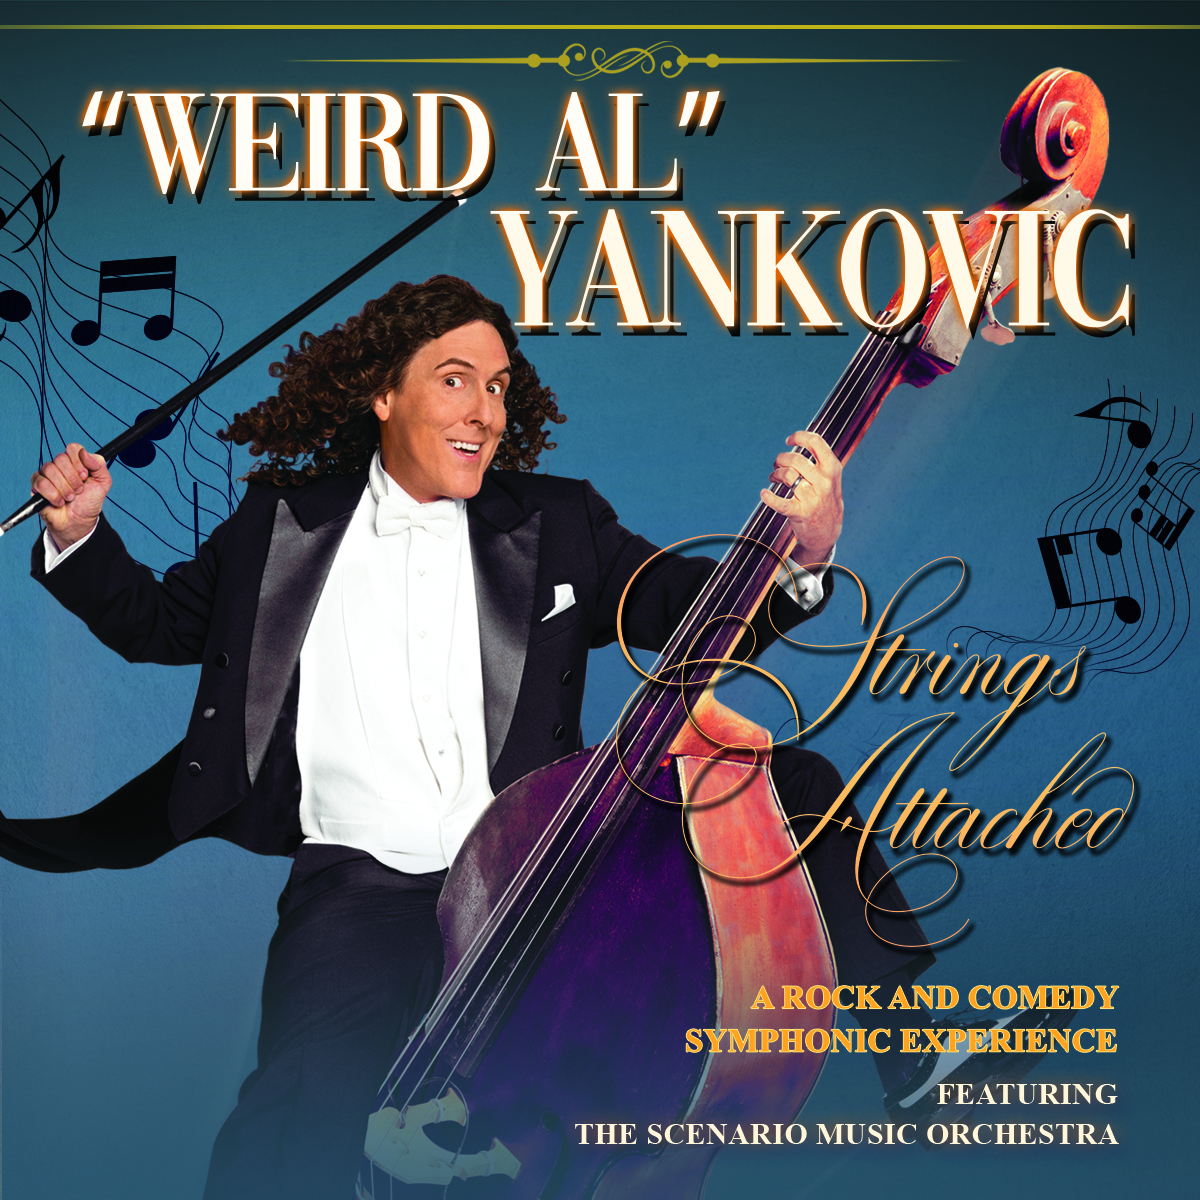 """Weird al"""" yankovic to turn blizzcon® 2016 into a gamer's paradise."""